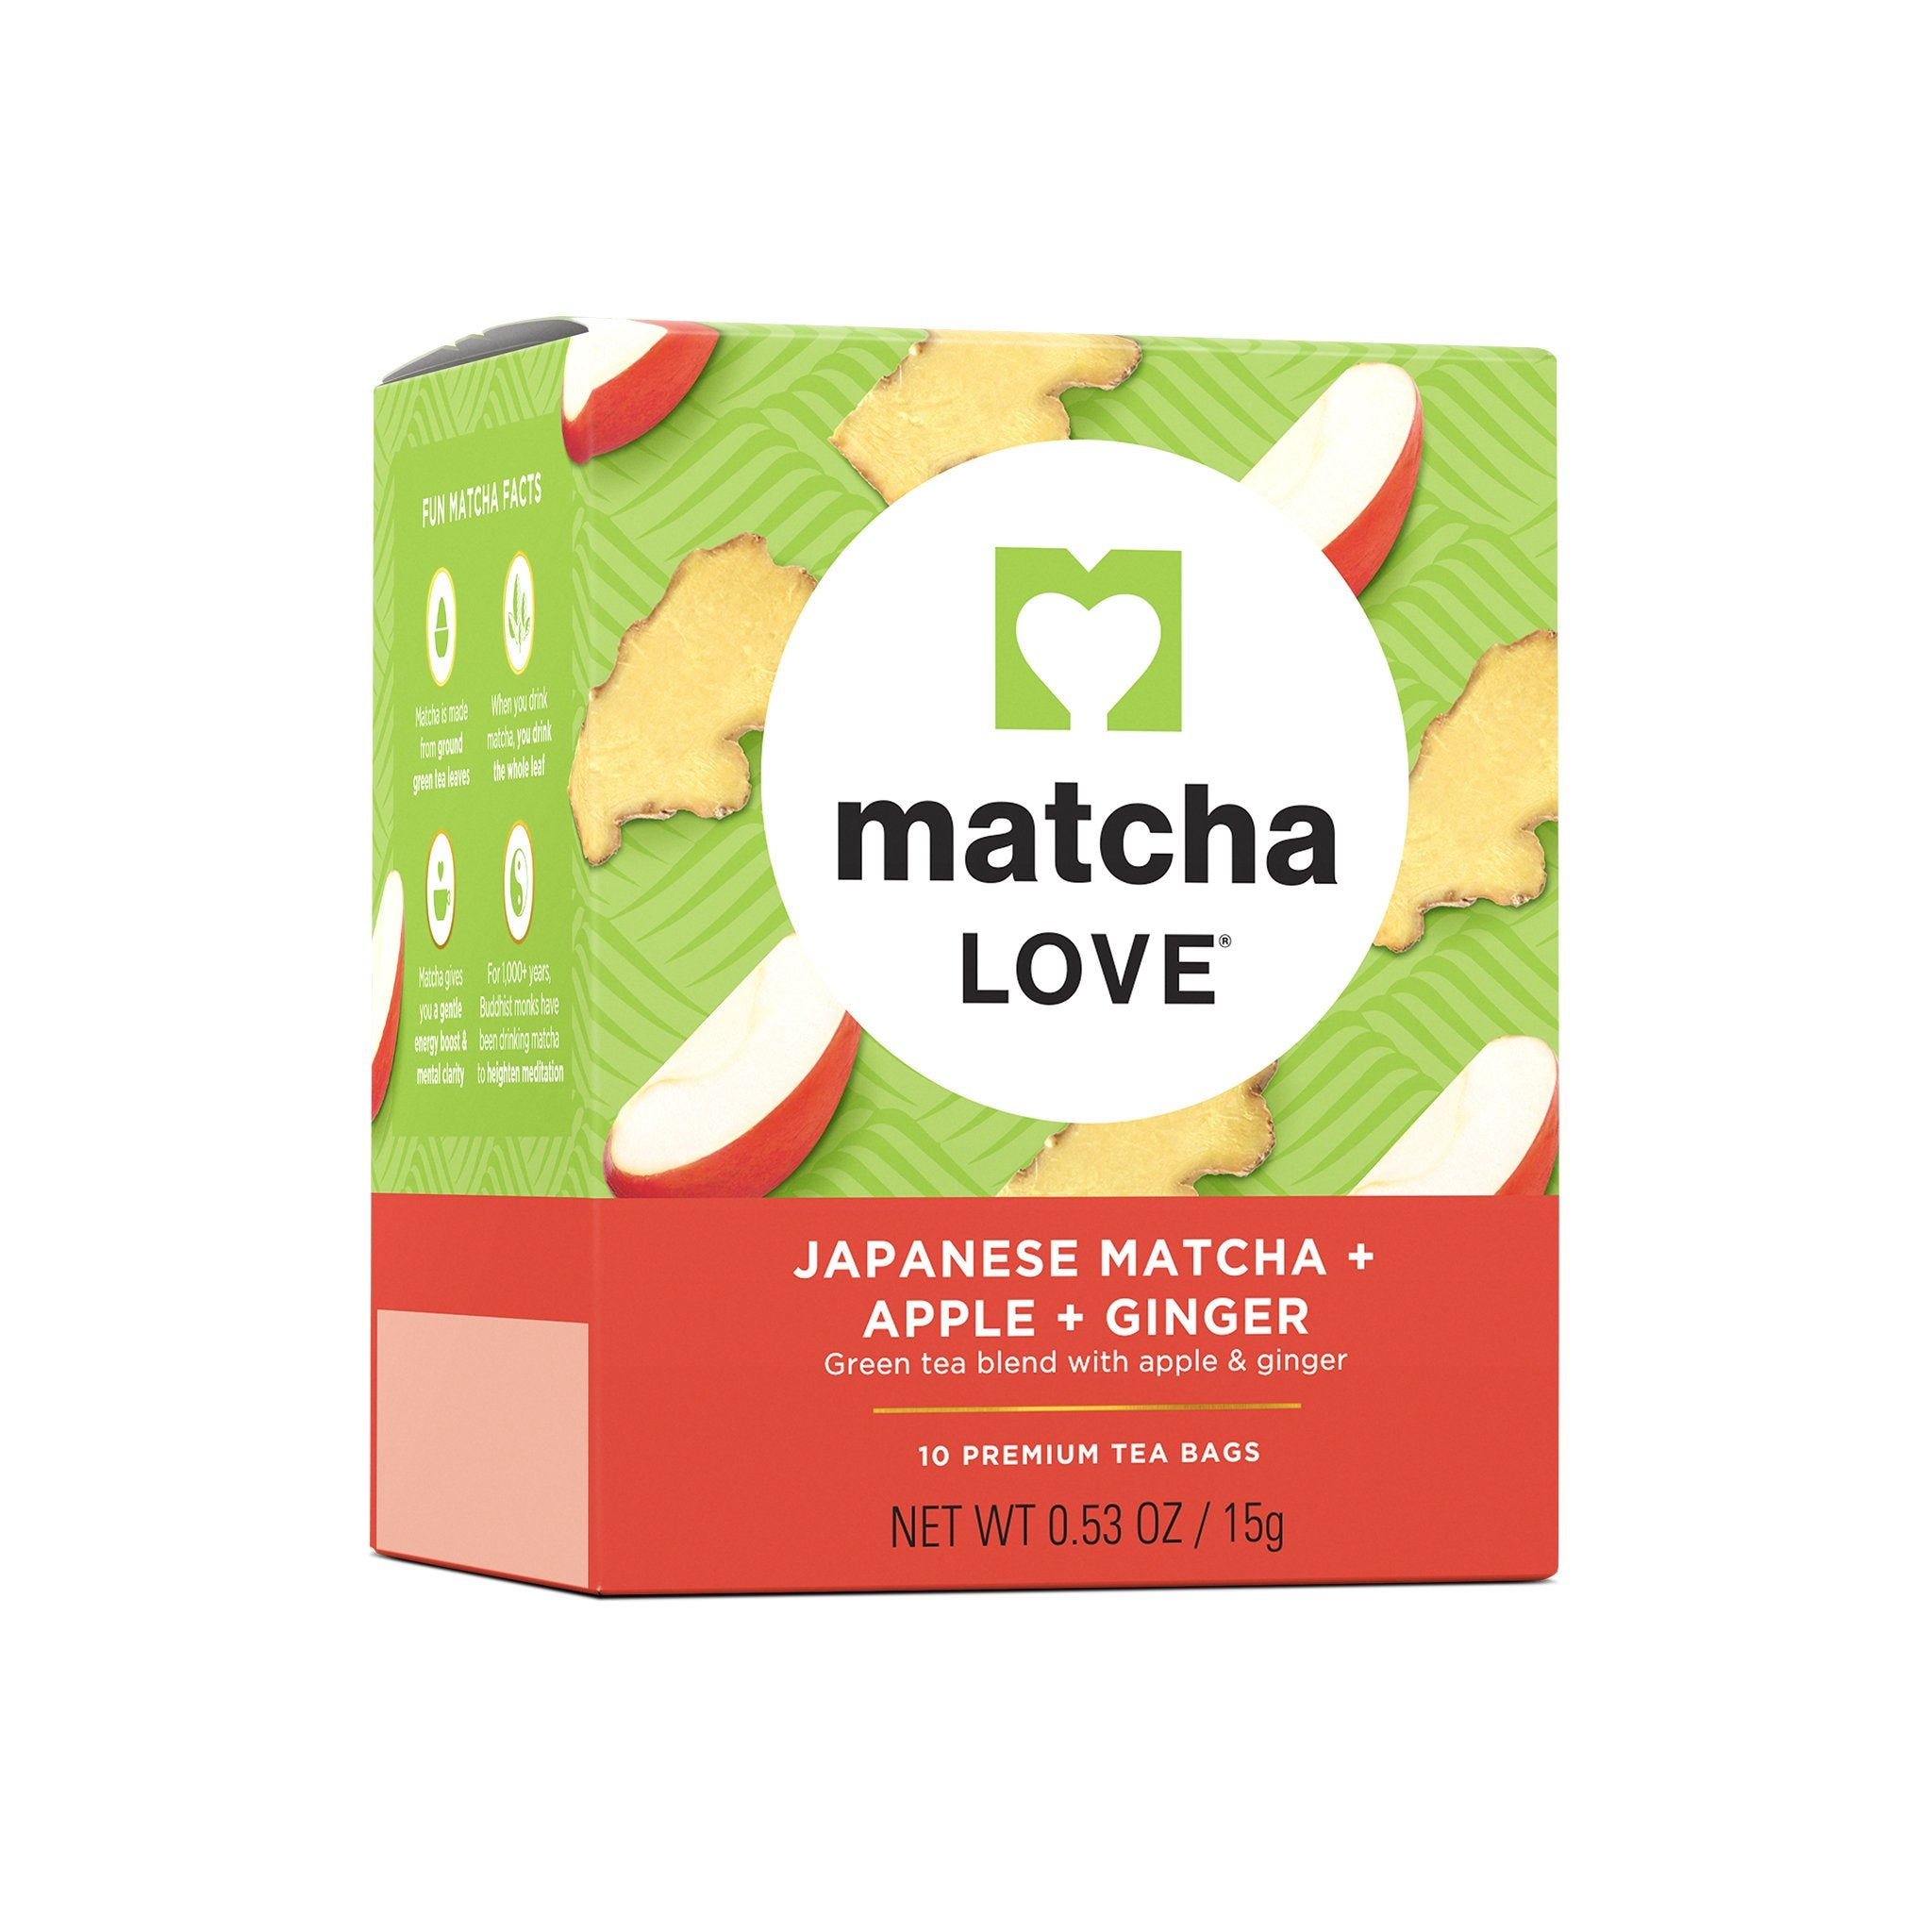 Japanese Matcha + Apple + Ginger